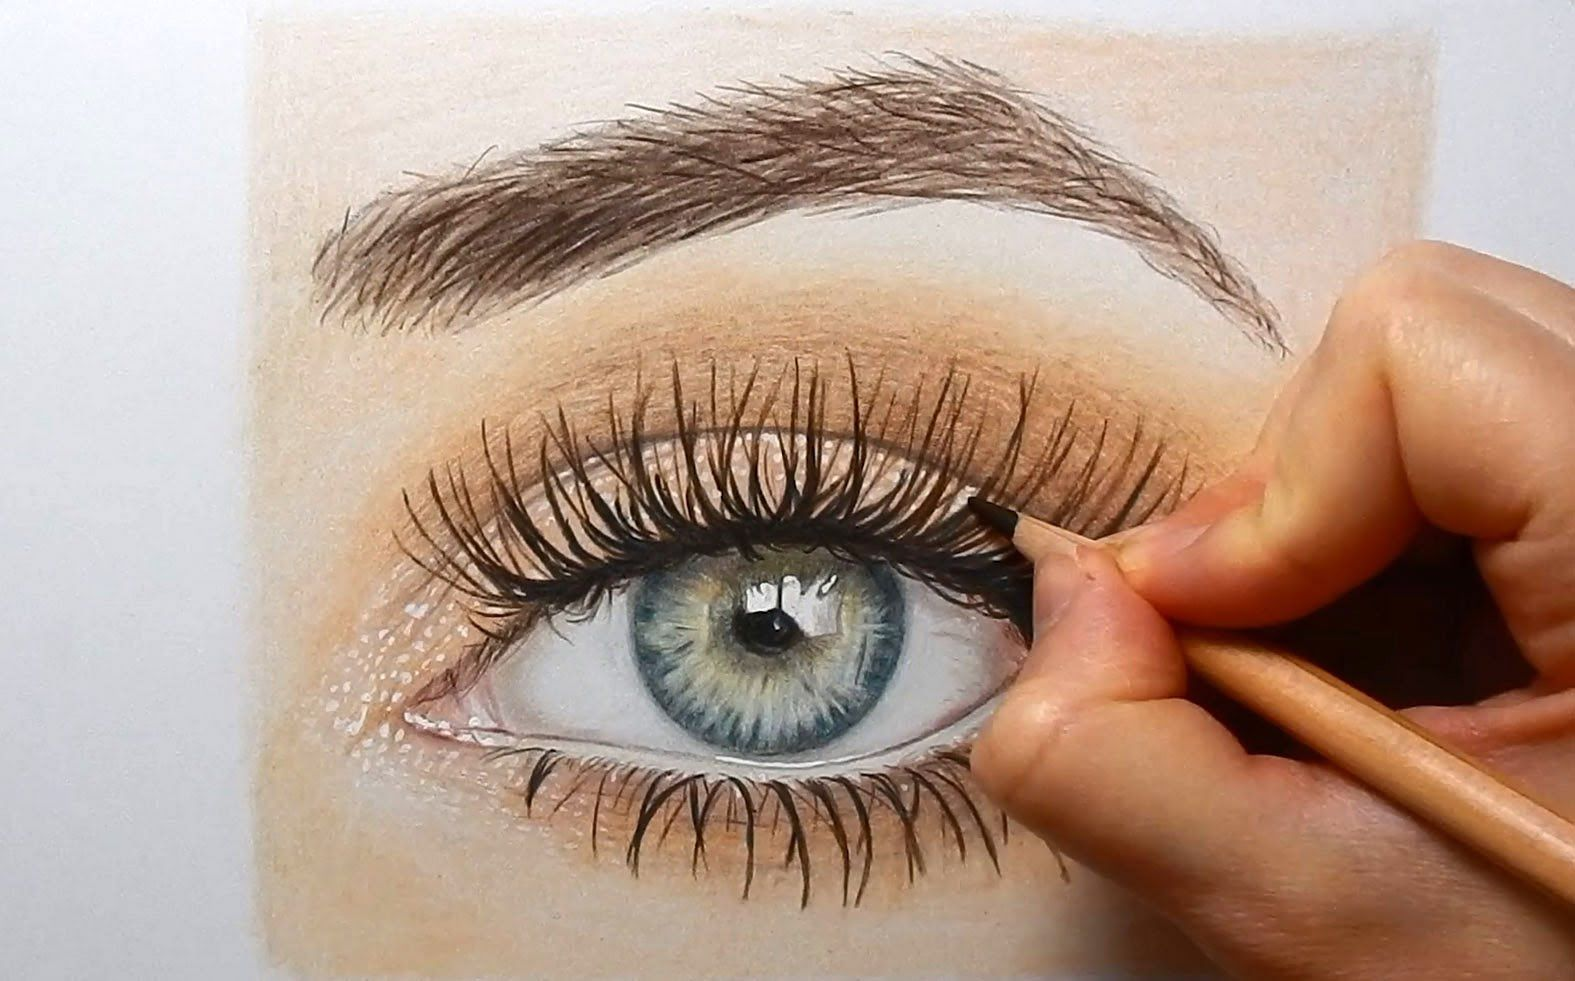 How to draw with colored pencils - Drawing A Realistic Eye With Colored Pencils Emmy Kalia